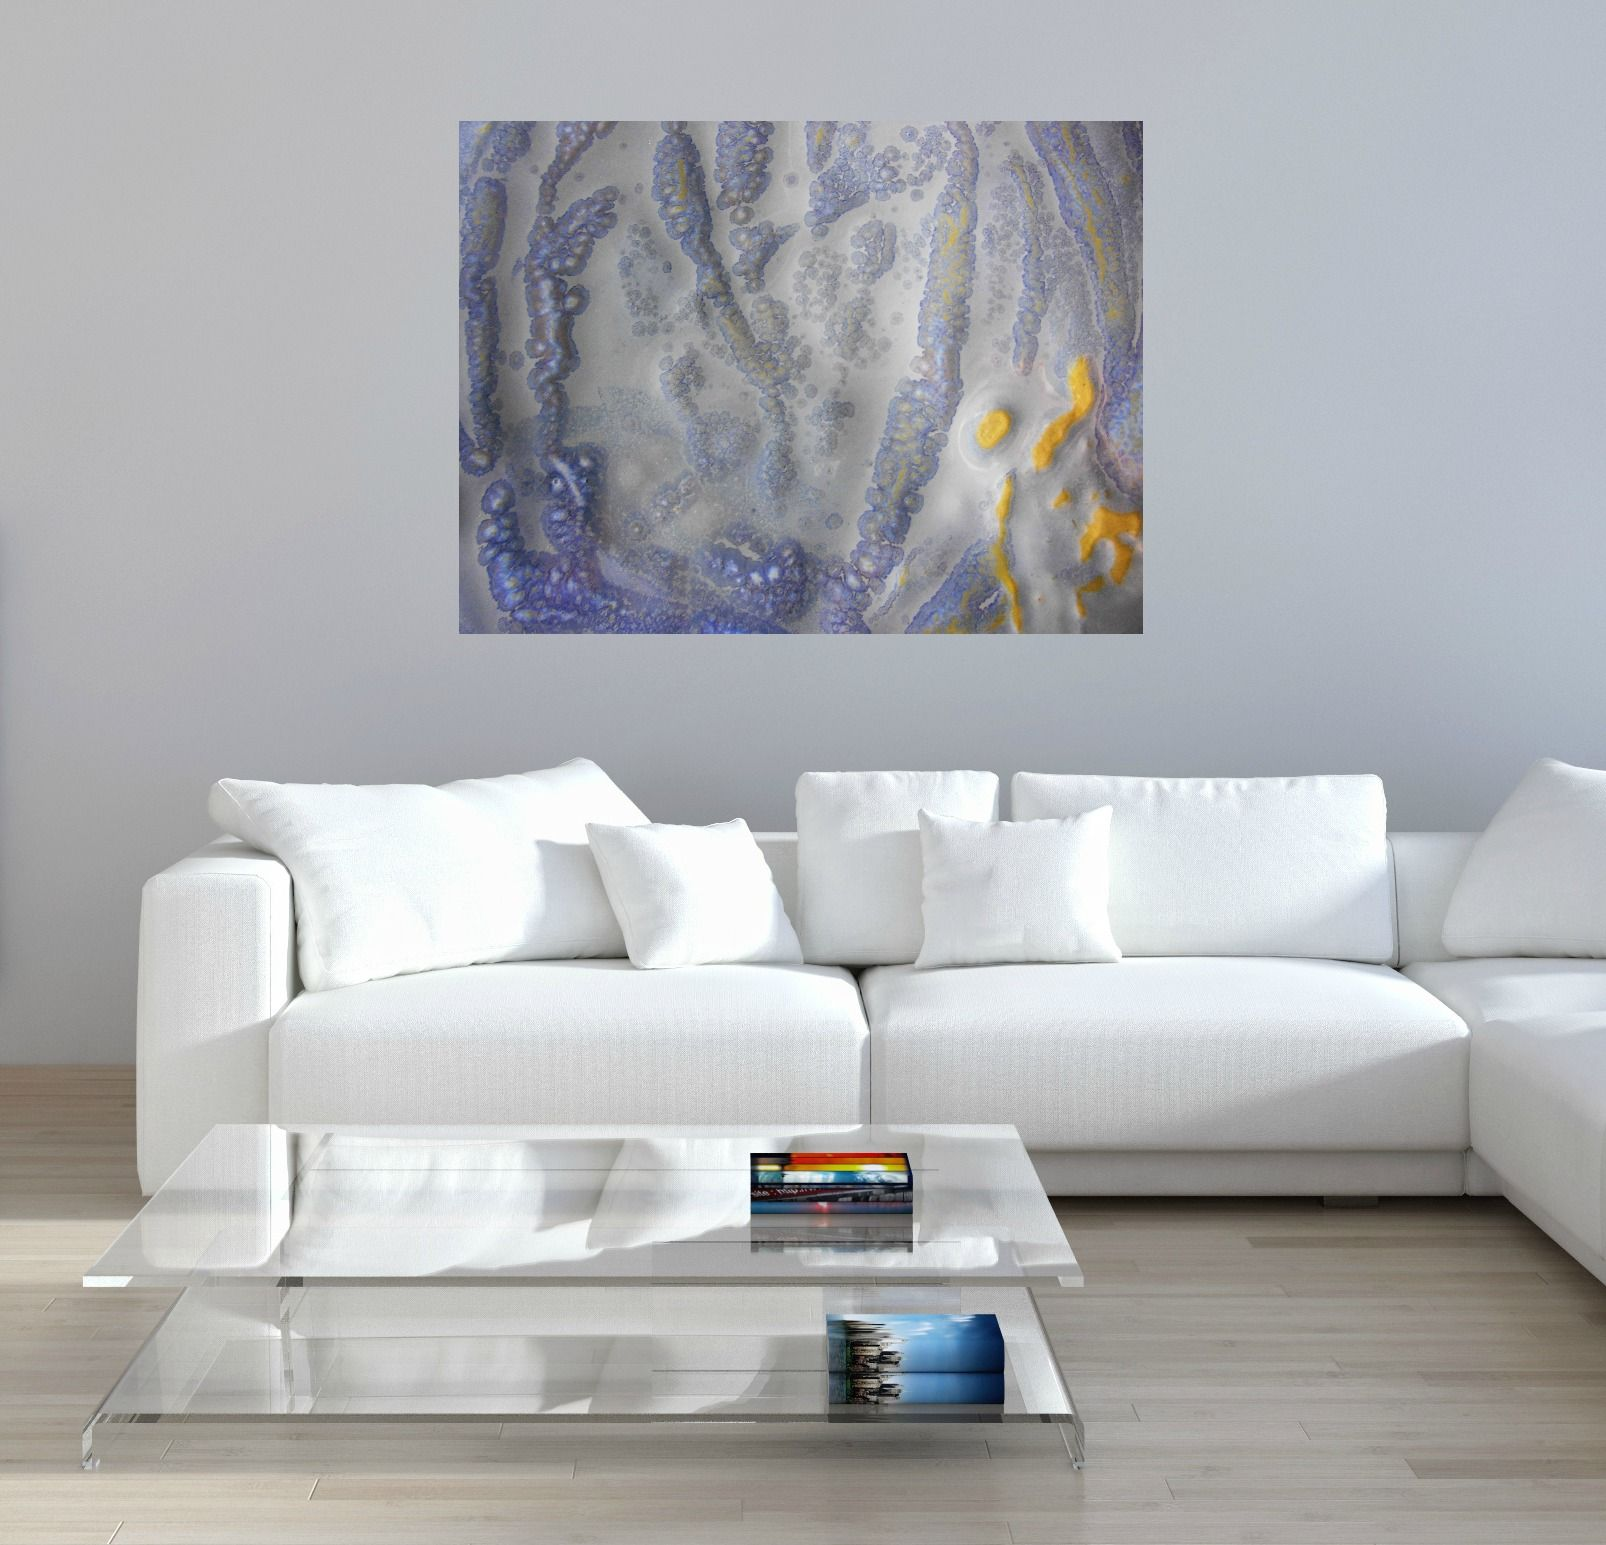 Modern Paintings For Living Room How To Make Your Beach House Beautiful With Oversized Artwork